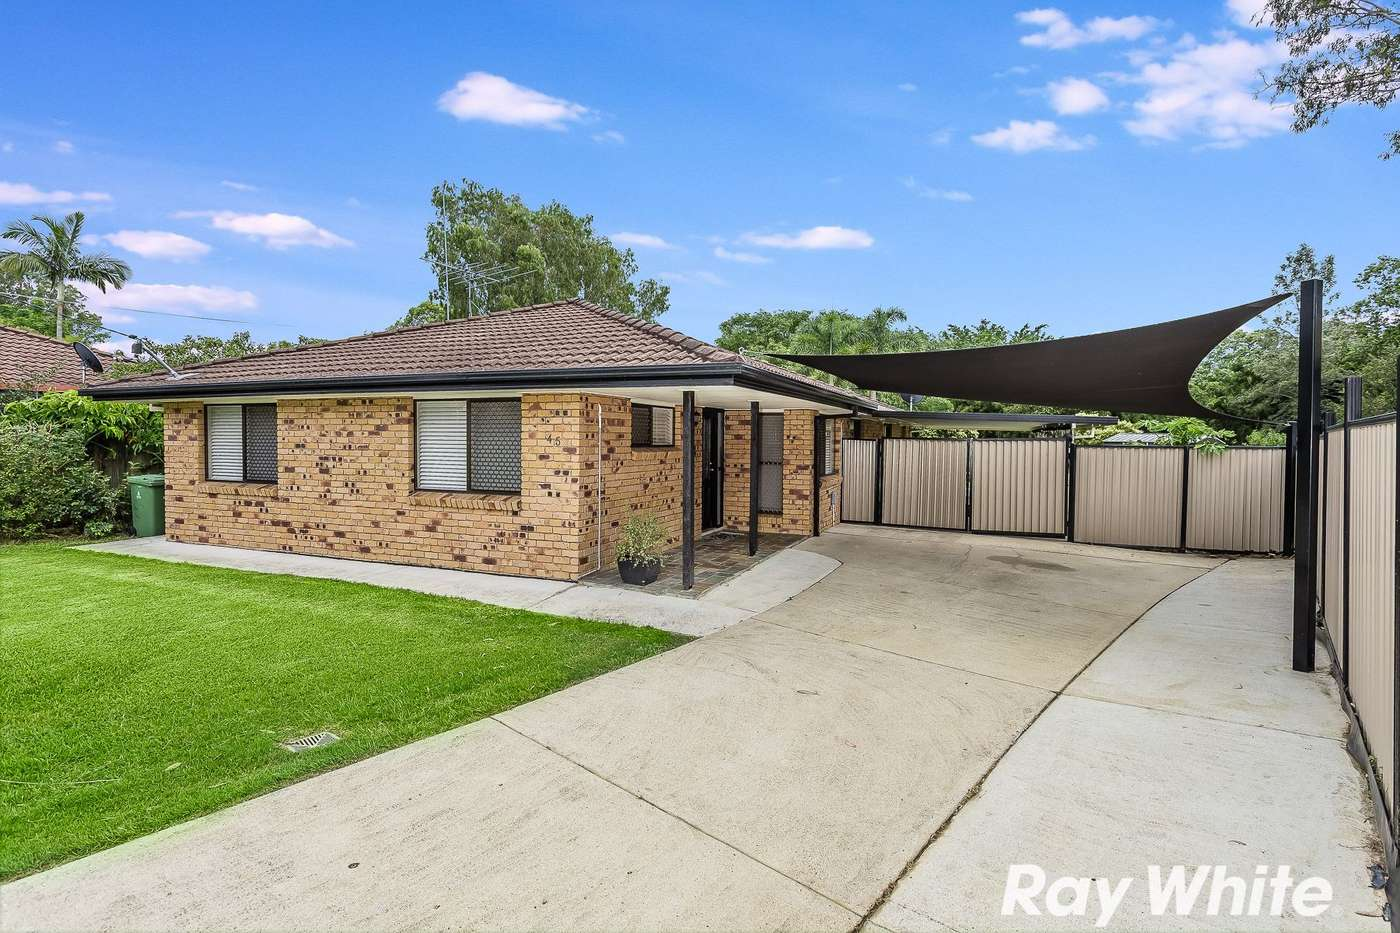 Main view of Homely house listing, 45 Voltaire Crescent, Petrie, QLD 4502